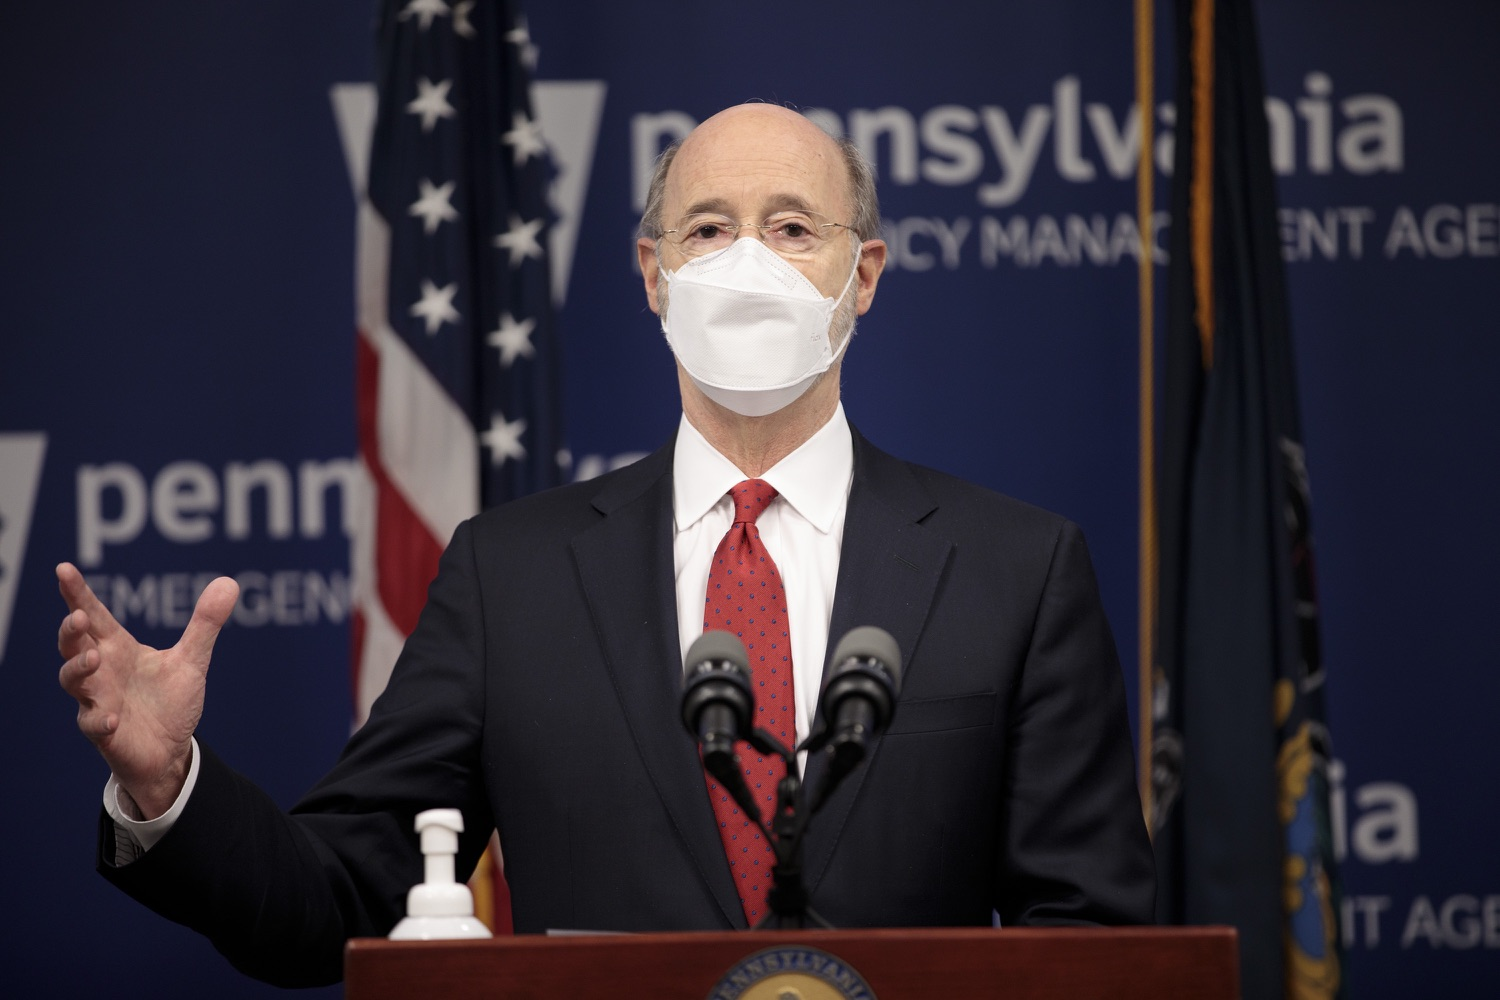 "<a href=""https://filesource.wostreaming.net/commonwealthofpa/photo/18540_gov_backtowork_dz_14.jpg"" target=""_blank"">⇣ Download Photo<br></a>Pennsylvania Governor Tom Wolf speaking at the press conference. The COVID-19 global pandemic has significantly affected Pennsylvania workers, businesses and communities. To bolster economic recovery efforts and position Pennsylvania for economic growth, Governor Tom Wolf today unveiled his Back to Work PA plan.   Harrisburg, PA  February 22, 2021"